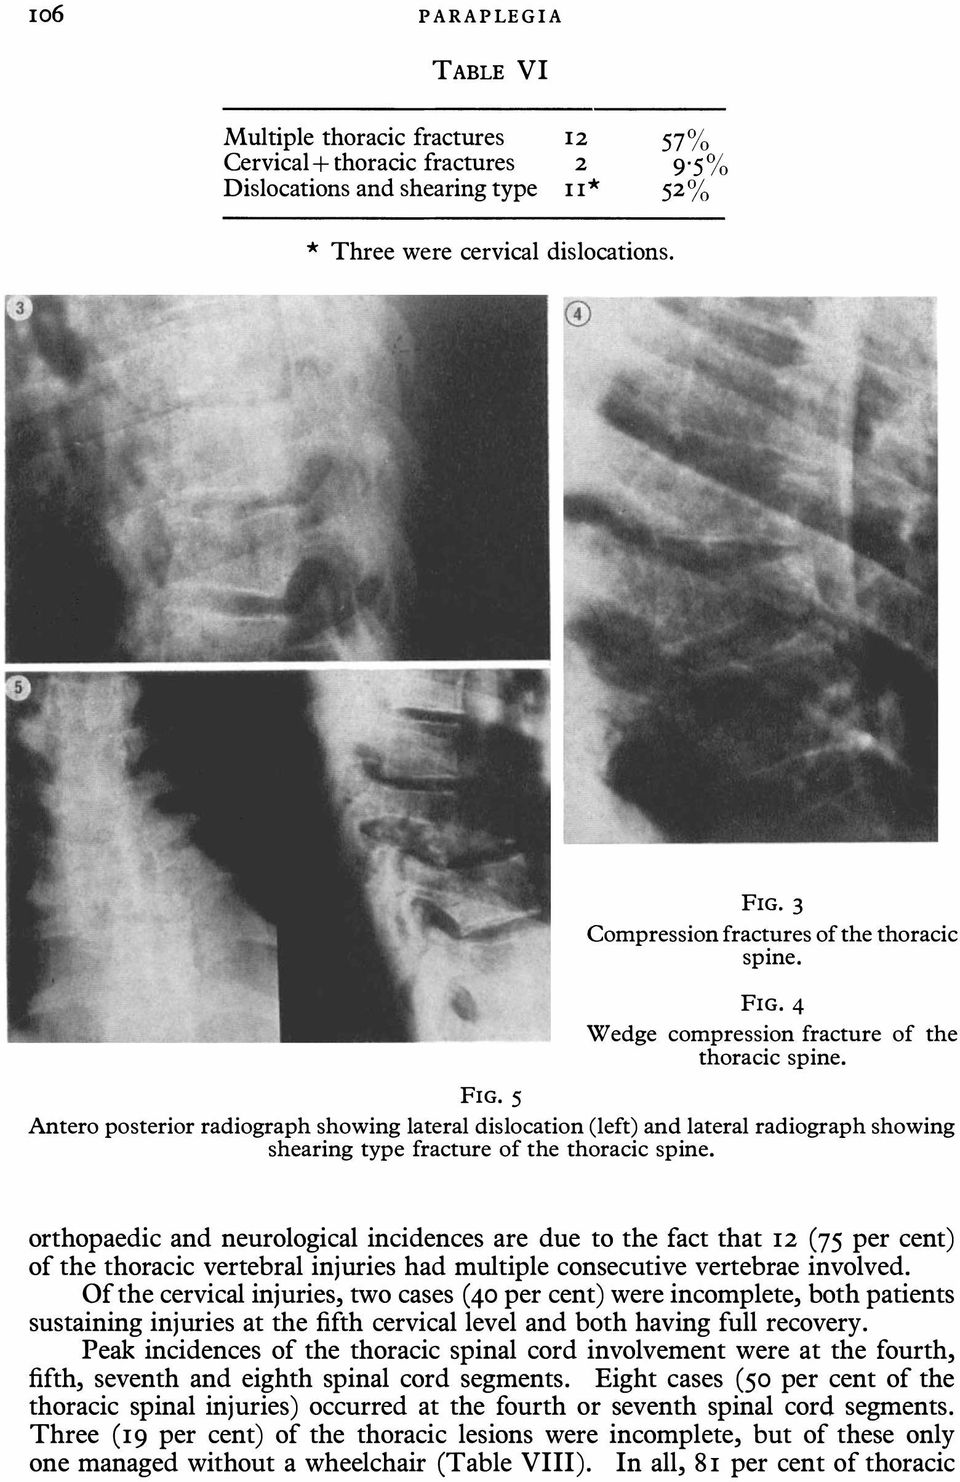 Antero posterior radiograph showing lateral dislocation (left) and lateral radiograph showing shearing type fracture of the thoracic spine.